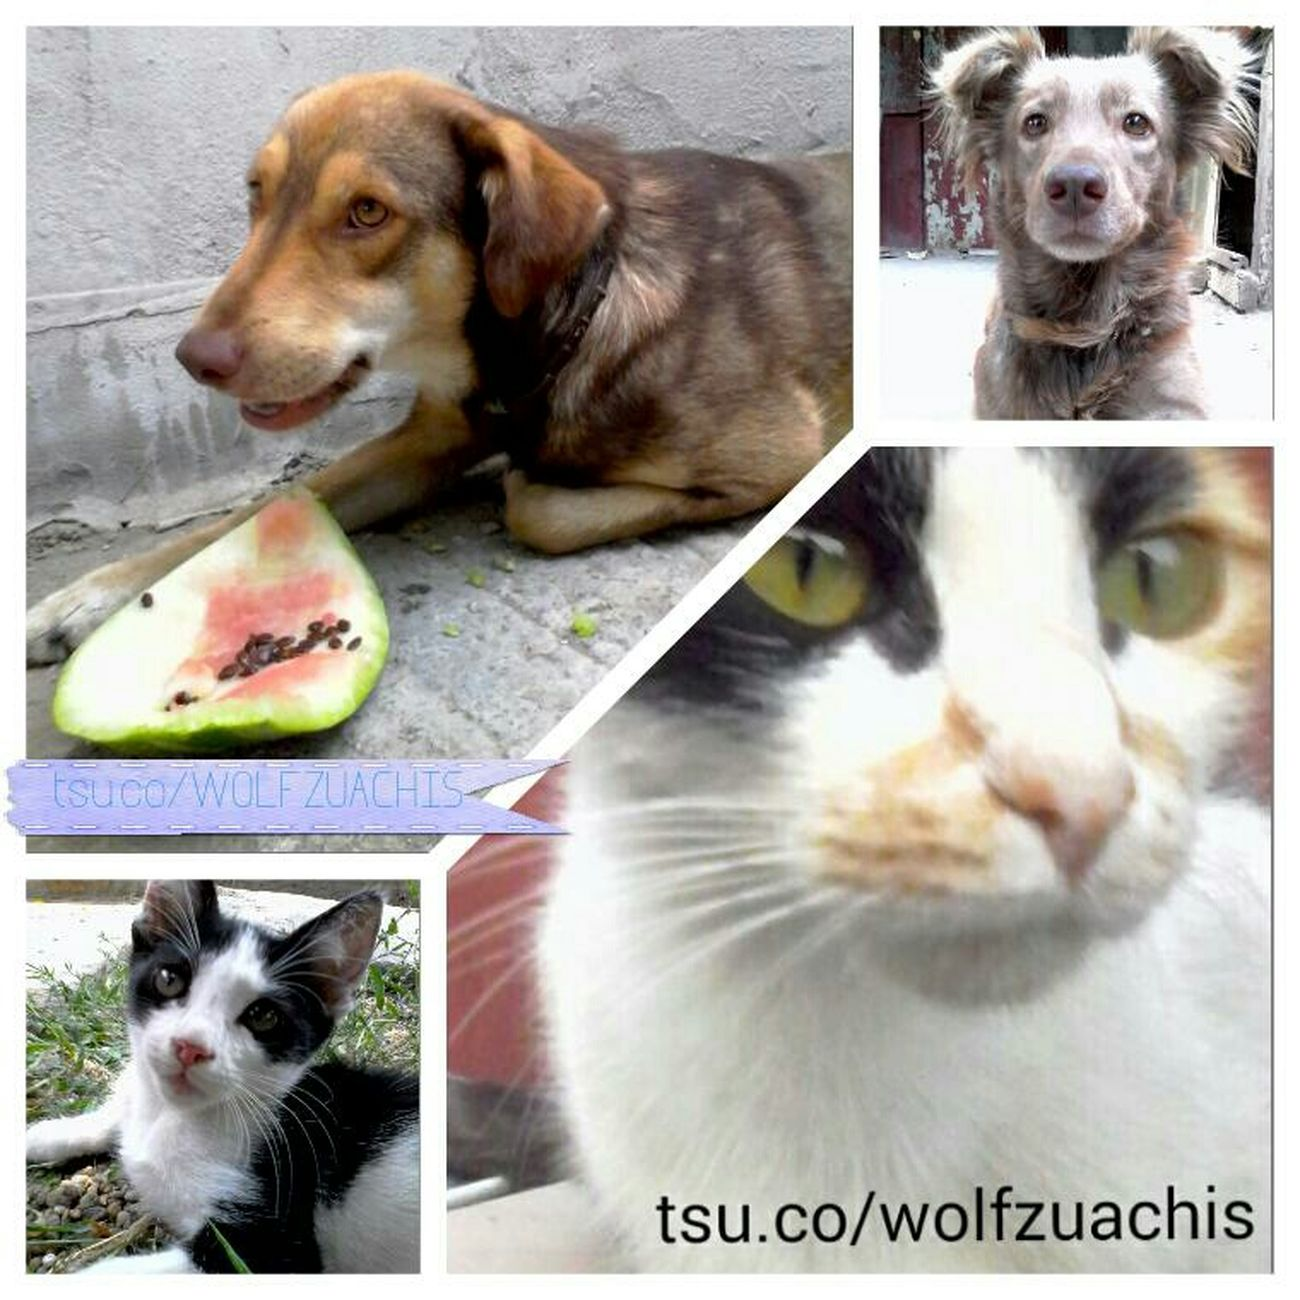 TSU Collage Wolfzuachis Colaj